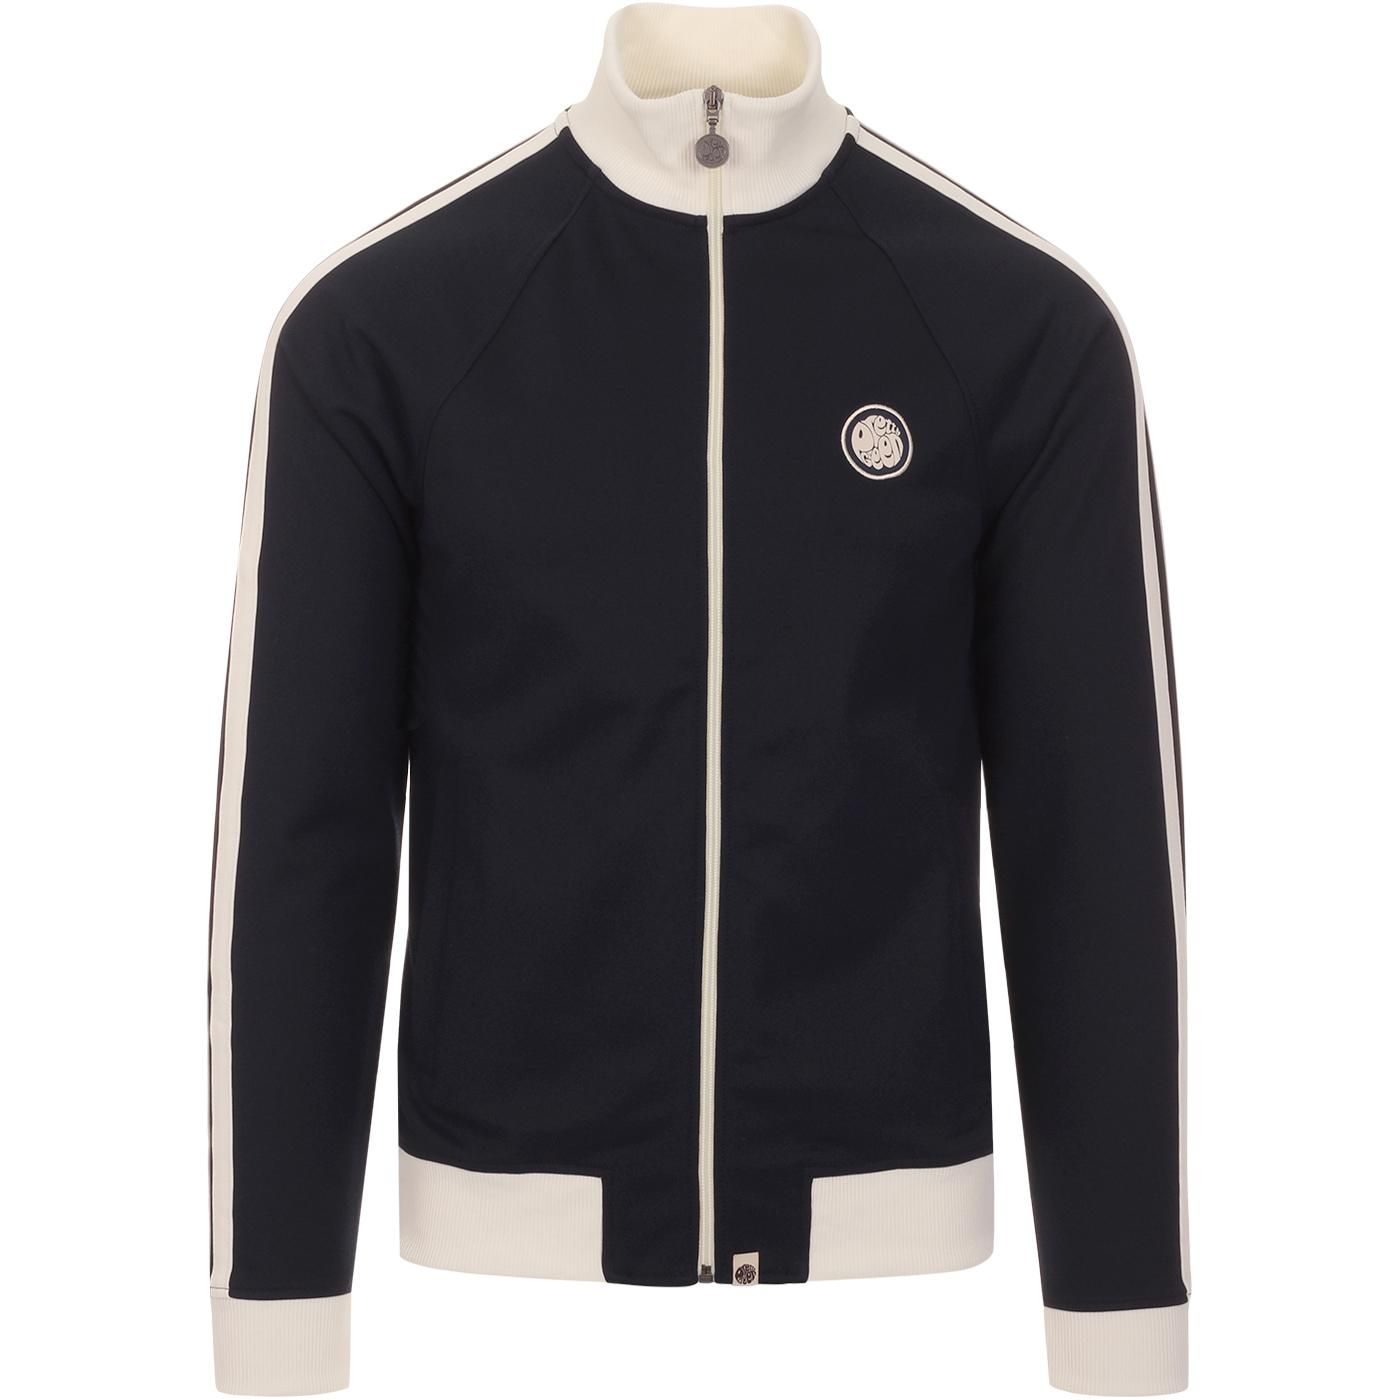 PRETTY GREEN Retro 1970s Funnel Neck Track Top (N)